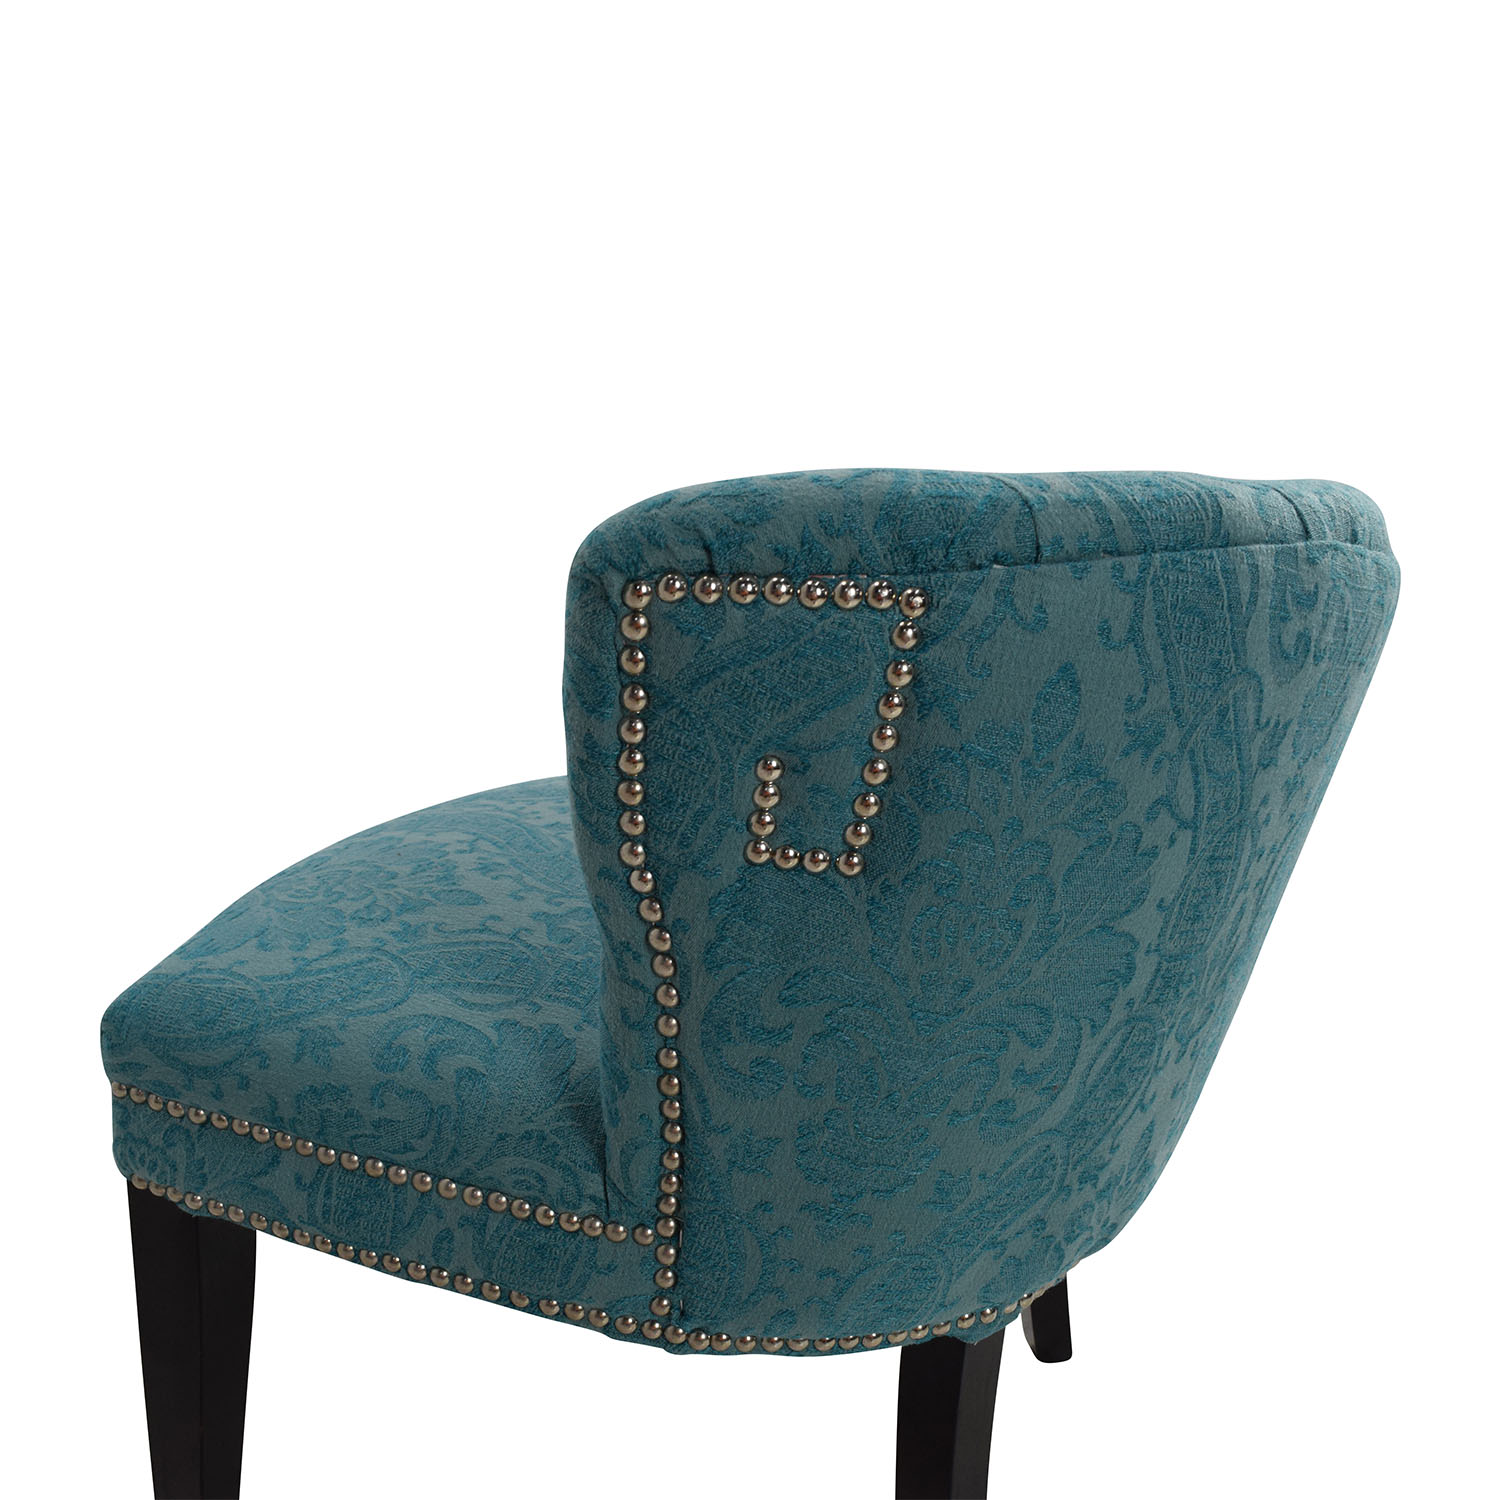 cynthia rowley home decor collection 50 home goods cynthia rowley shabby chic chair chairs 12052